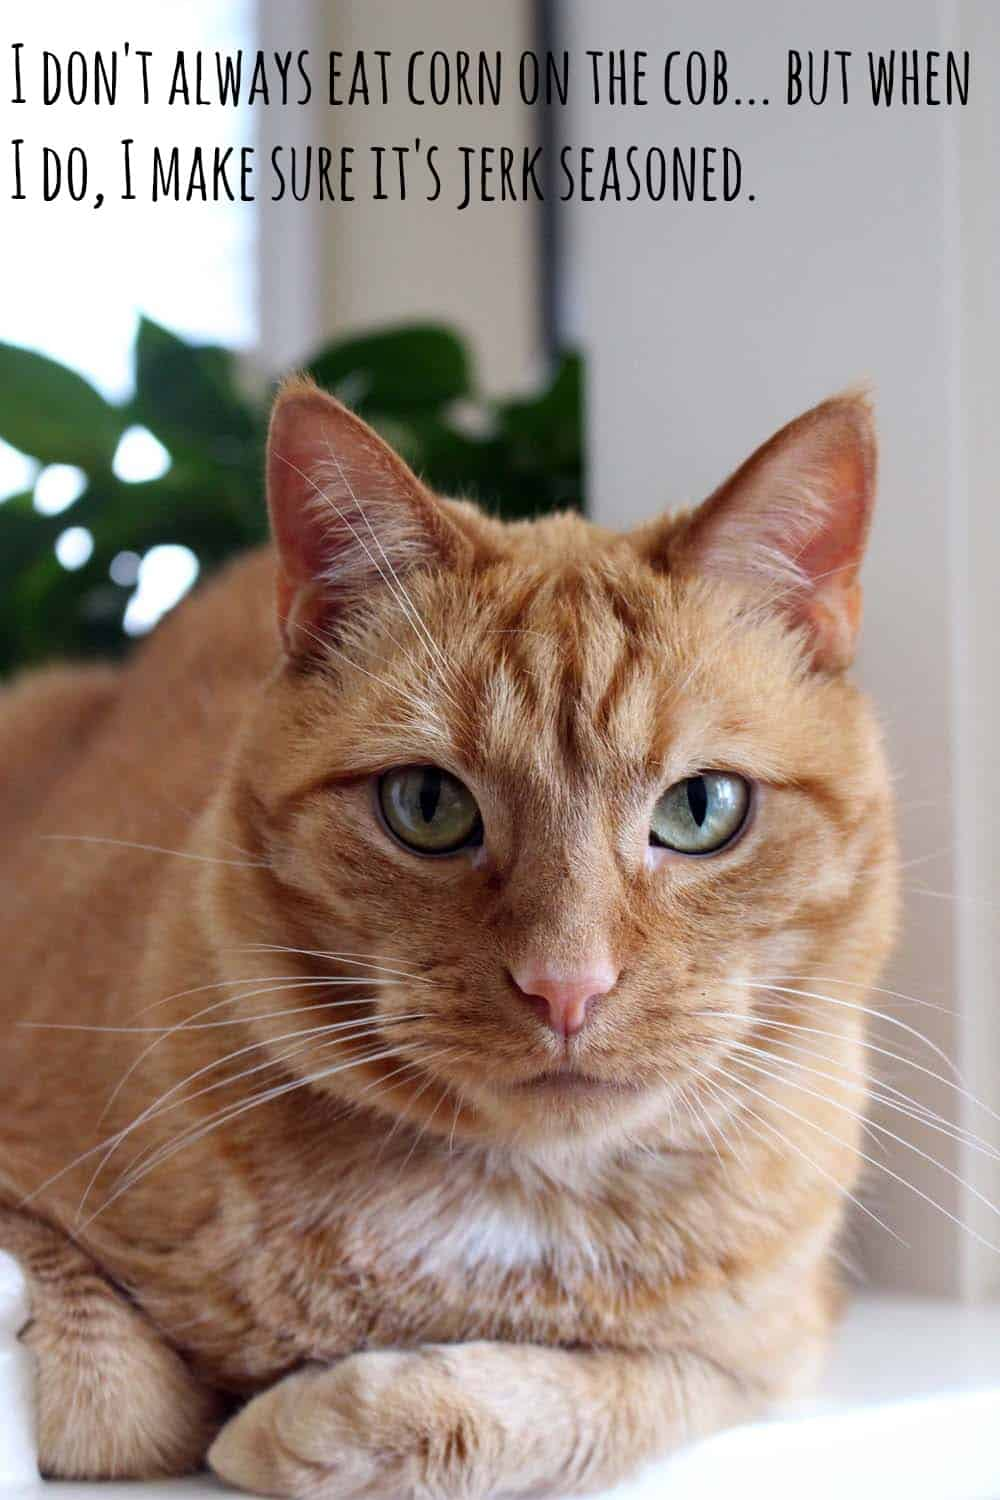 """Orange tabby cat looking at the camera with overlaid text that says """"I don't always eat corn on the cob, but when I do, I make sure it's jerk seasoned."""""""